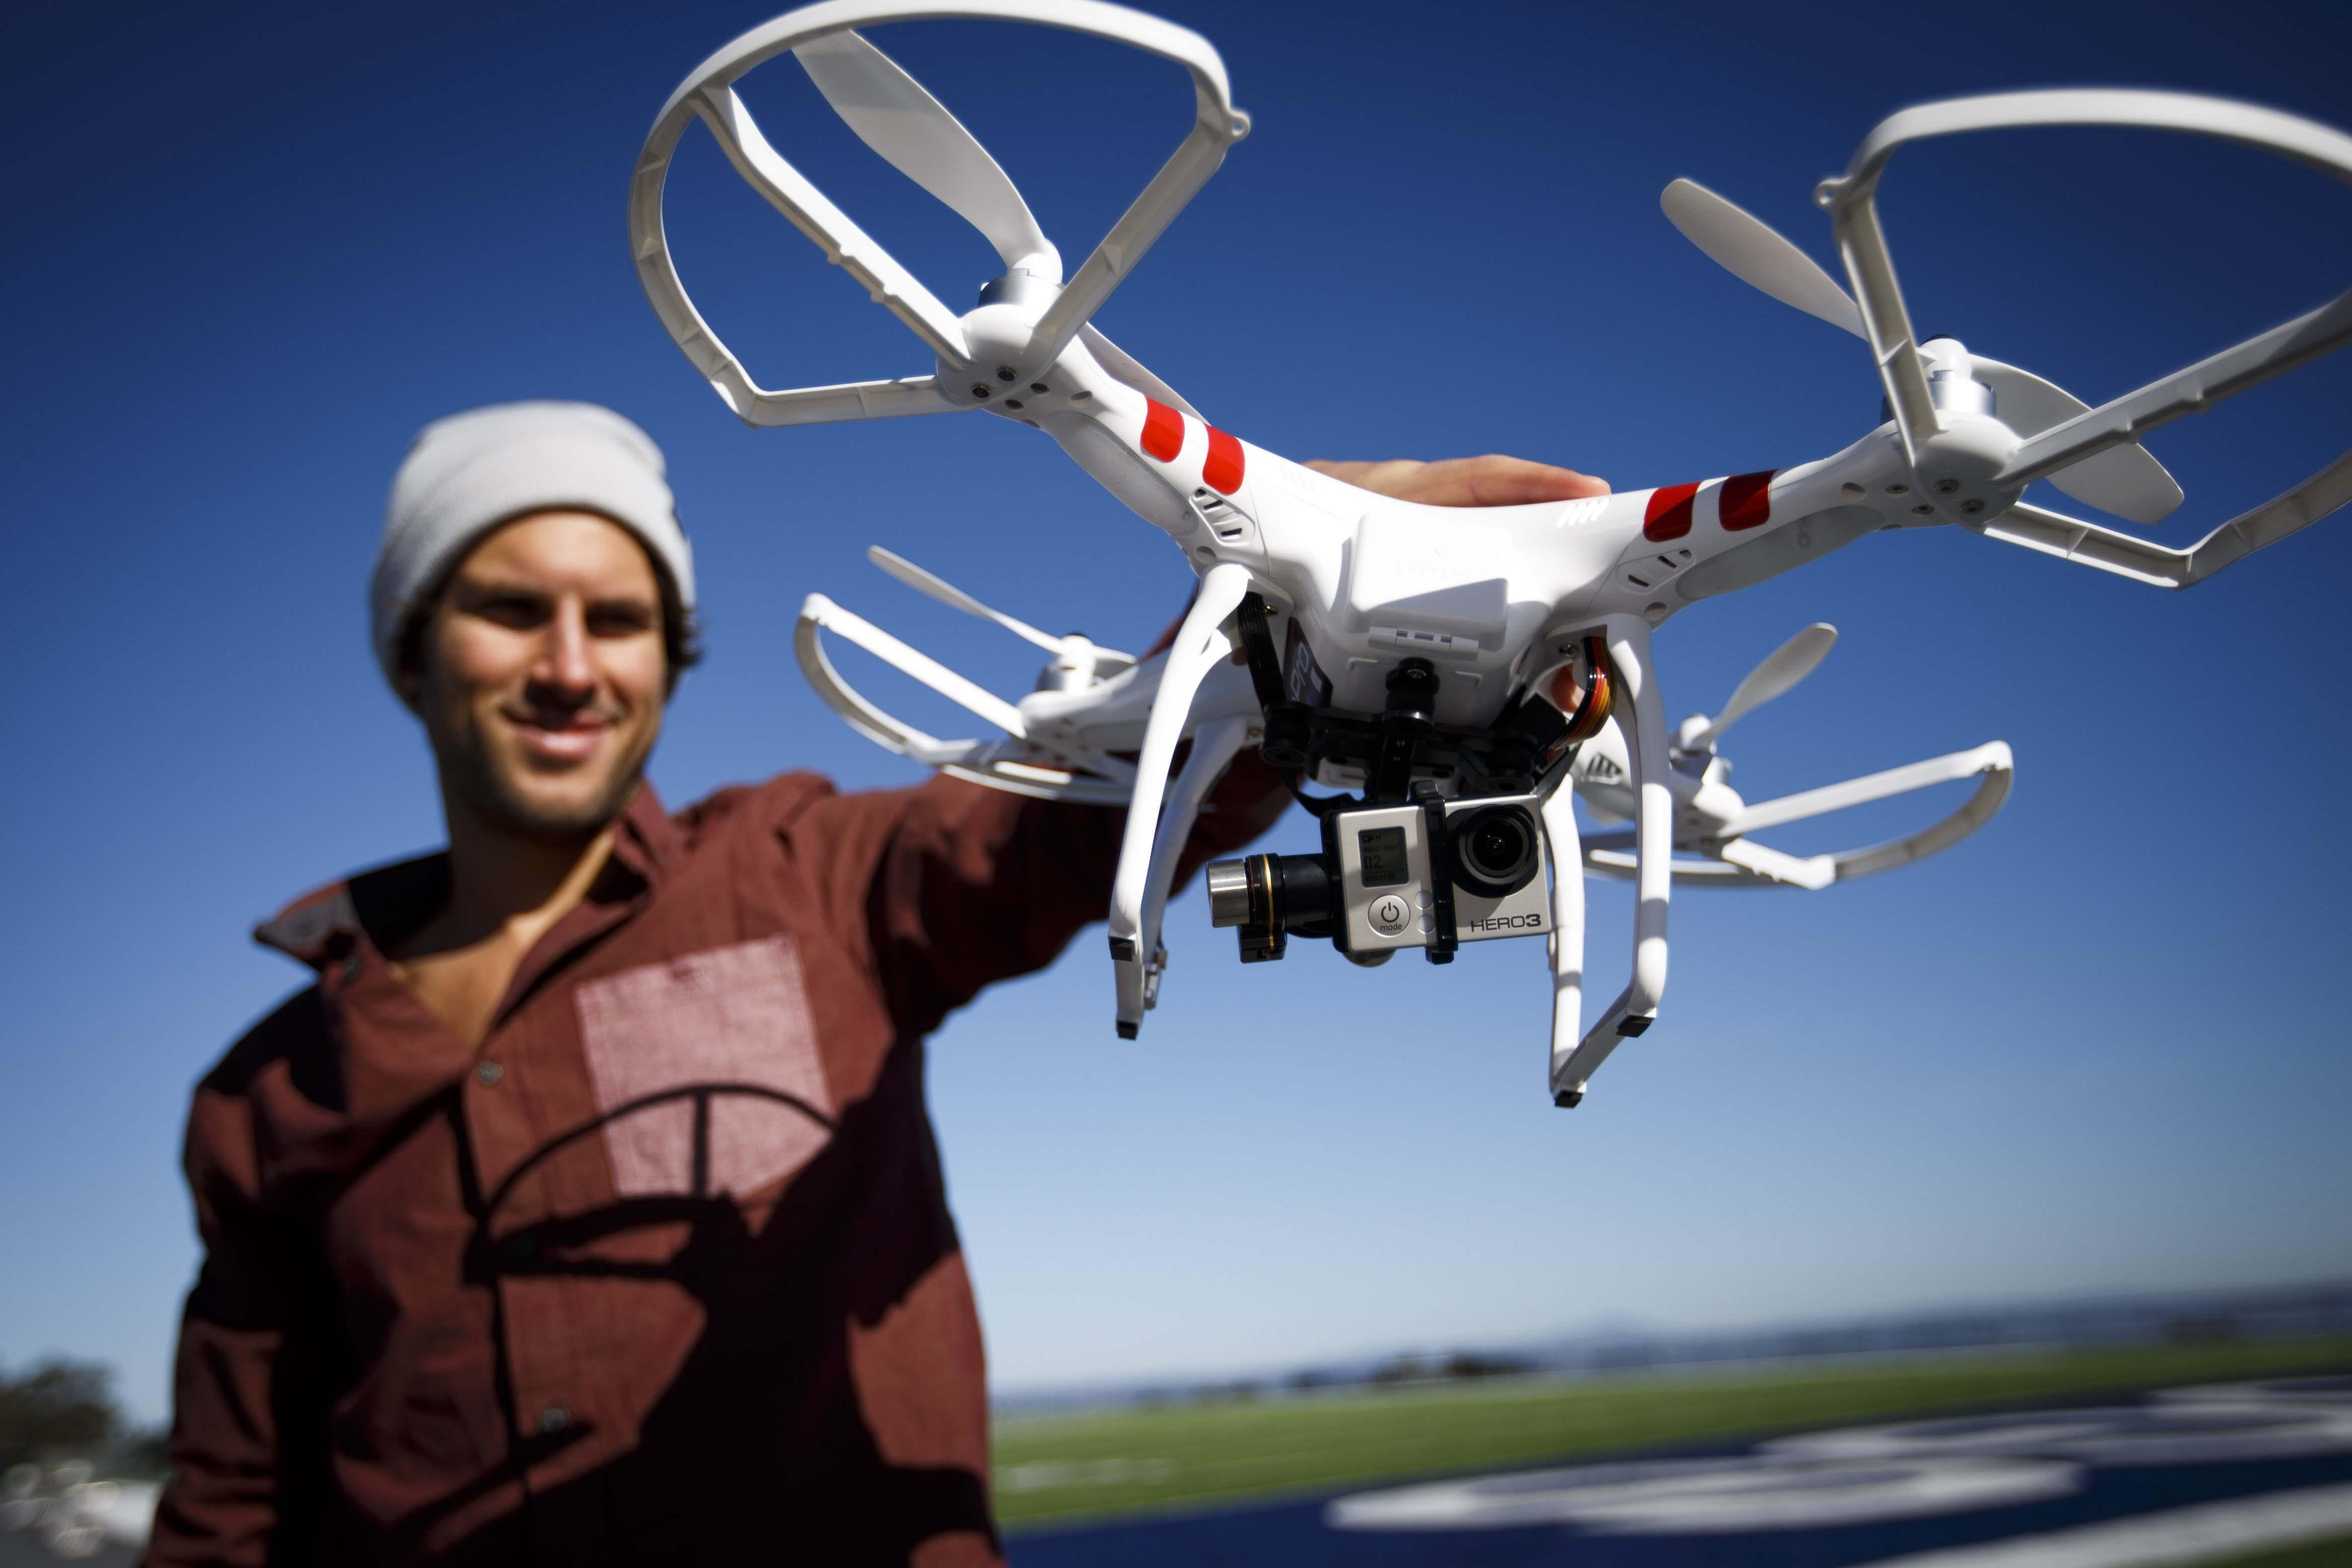 GoPro's senior production artist Abe Kislevitz demonstrates how to use a drone with a GoPro camera in San Mateo, Calif. The drone, named Phantom, is made by DJI. (Dai Sugano/Bay Area News Group/MCT)